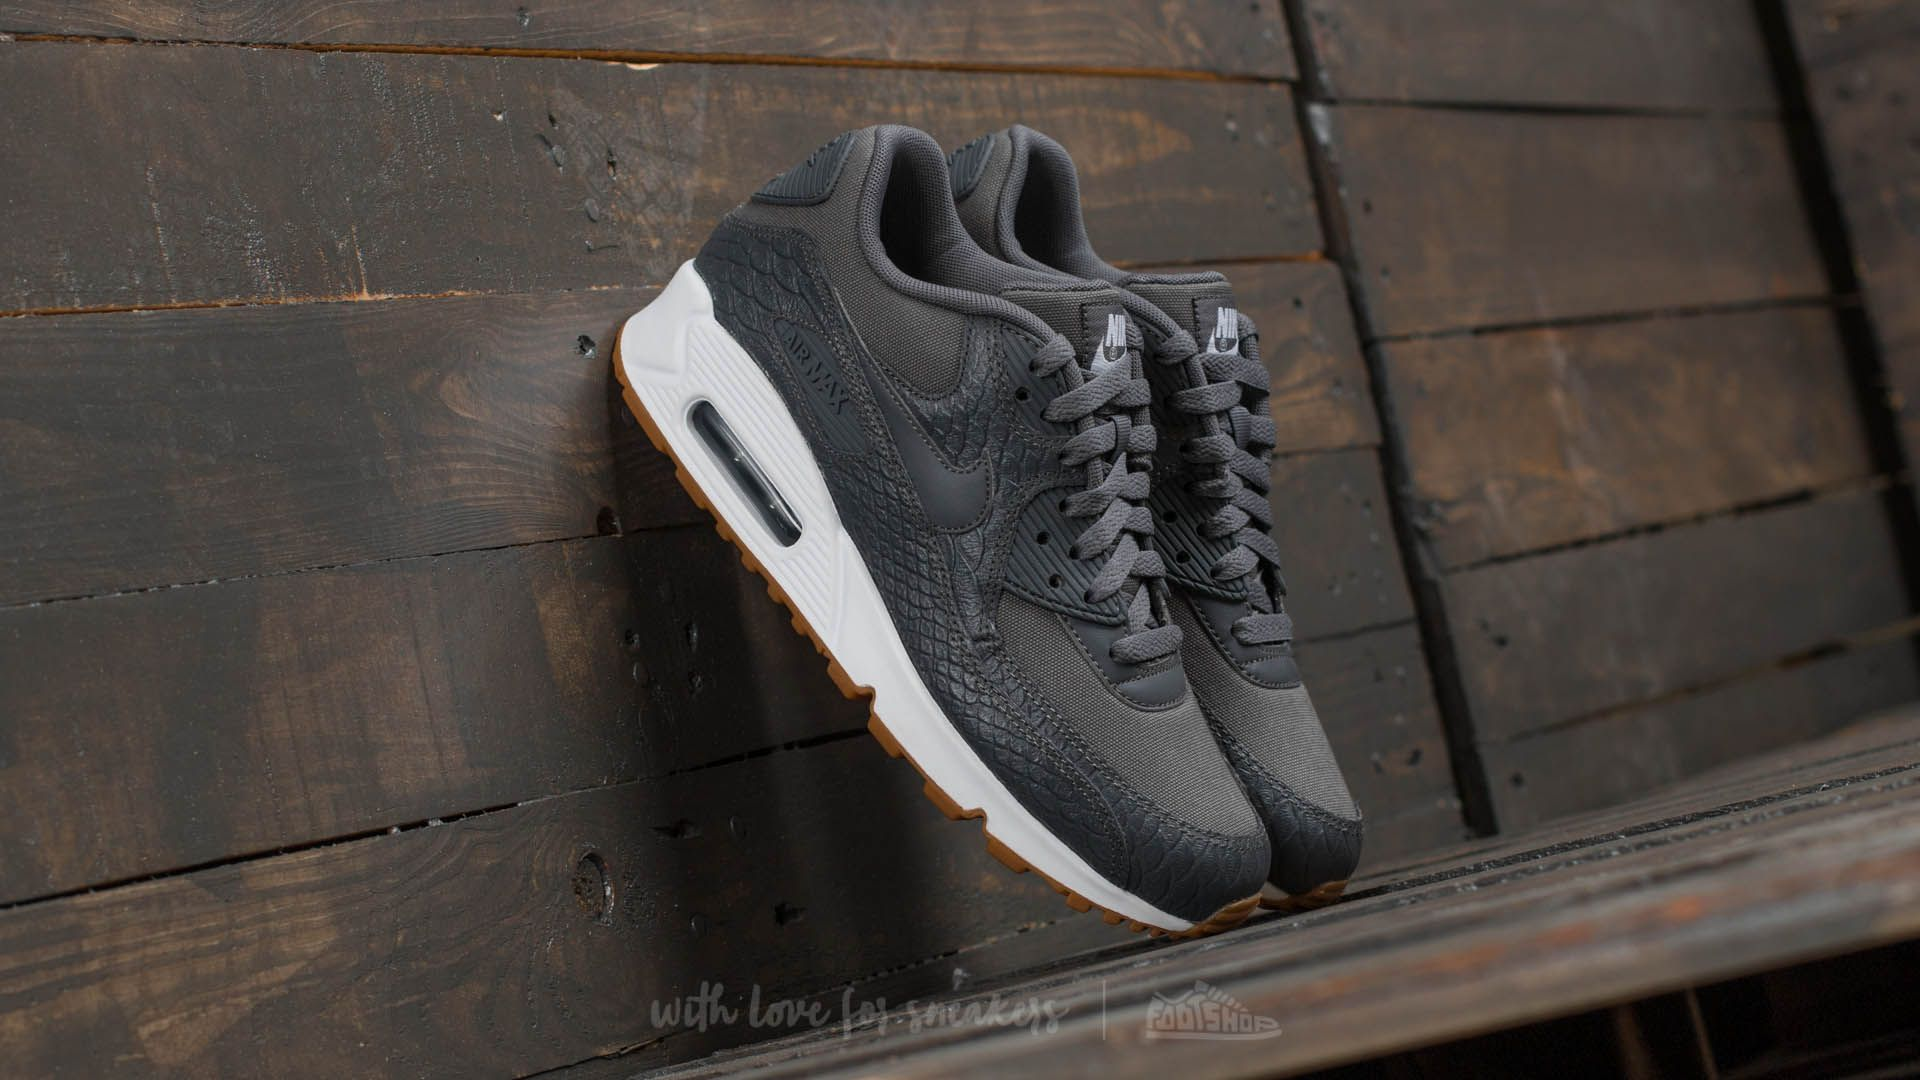 Nike Wmns Air Max 90 Premium Dark Grey/ Dark Grey-Gum Yellow